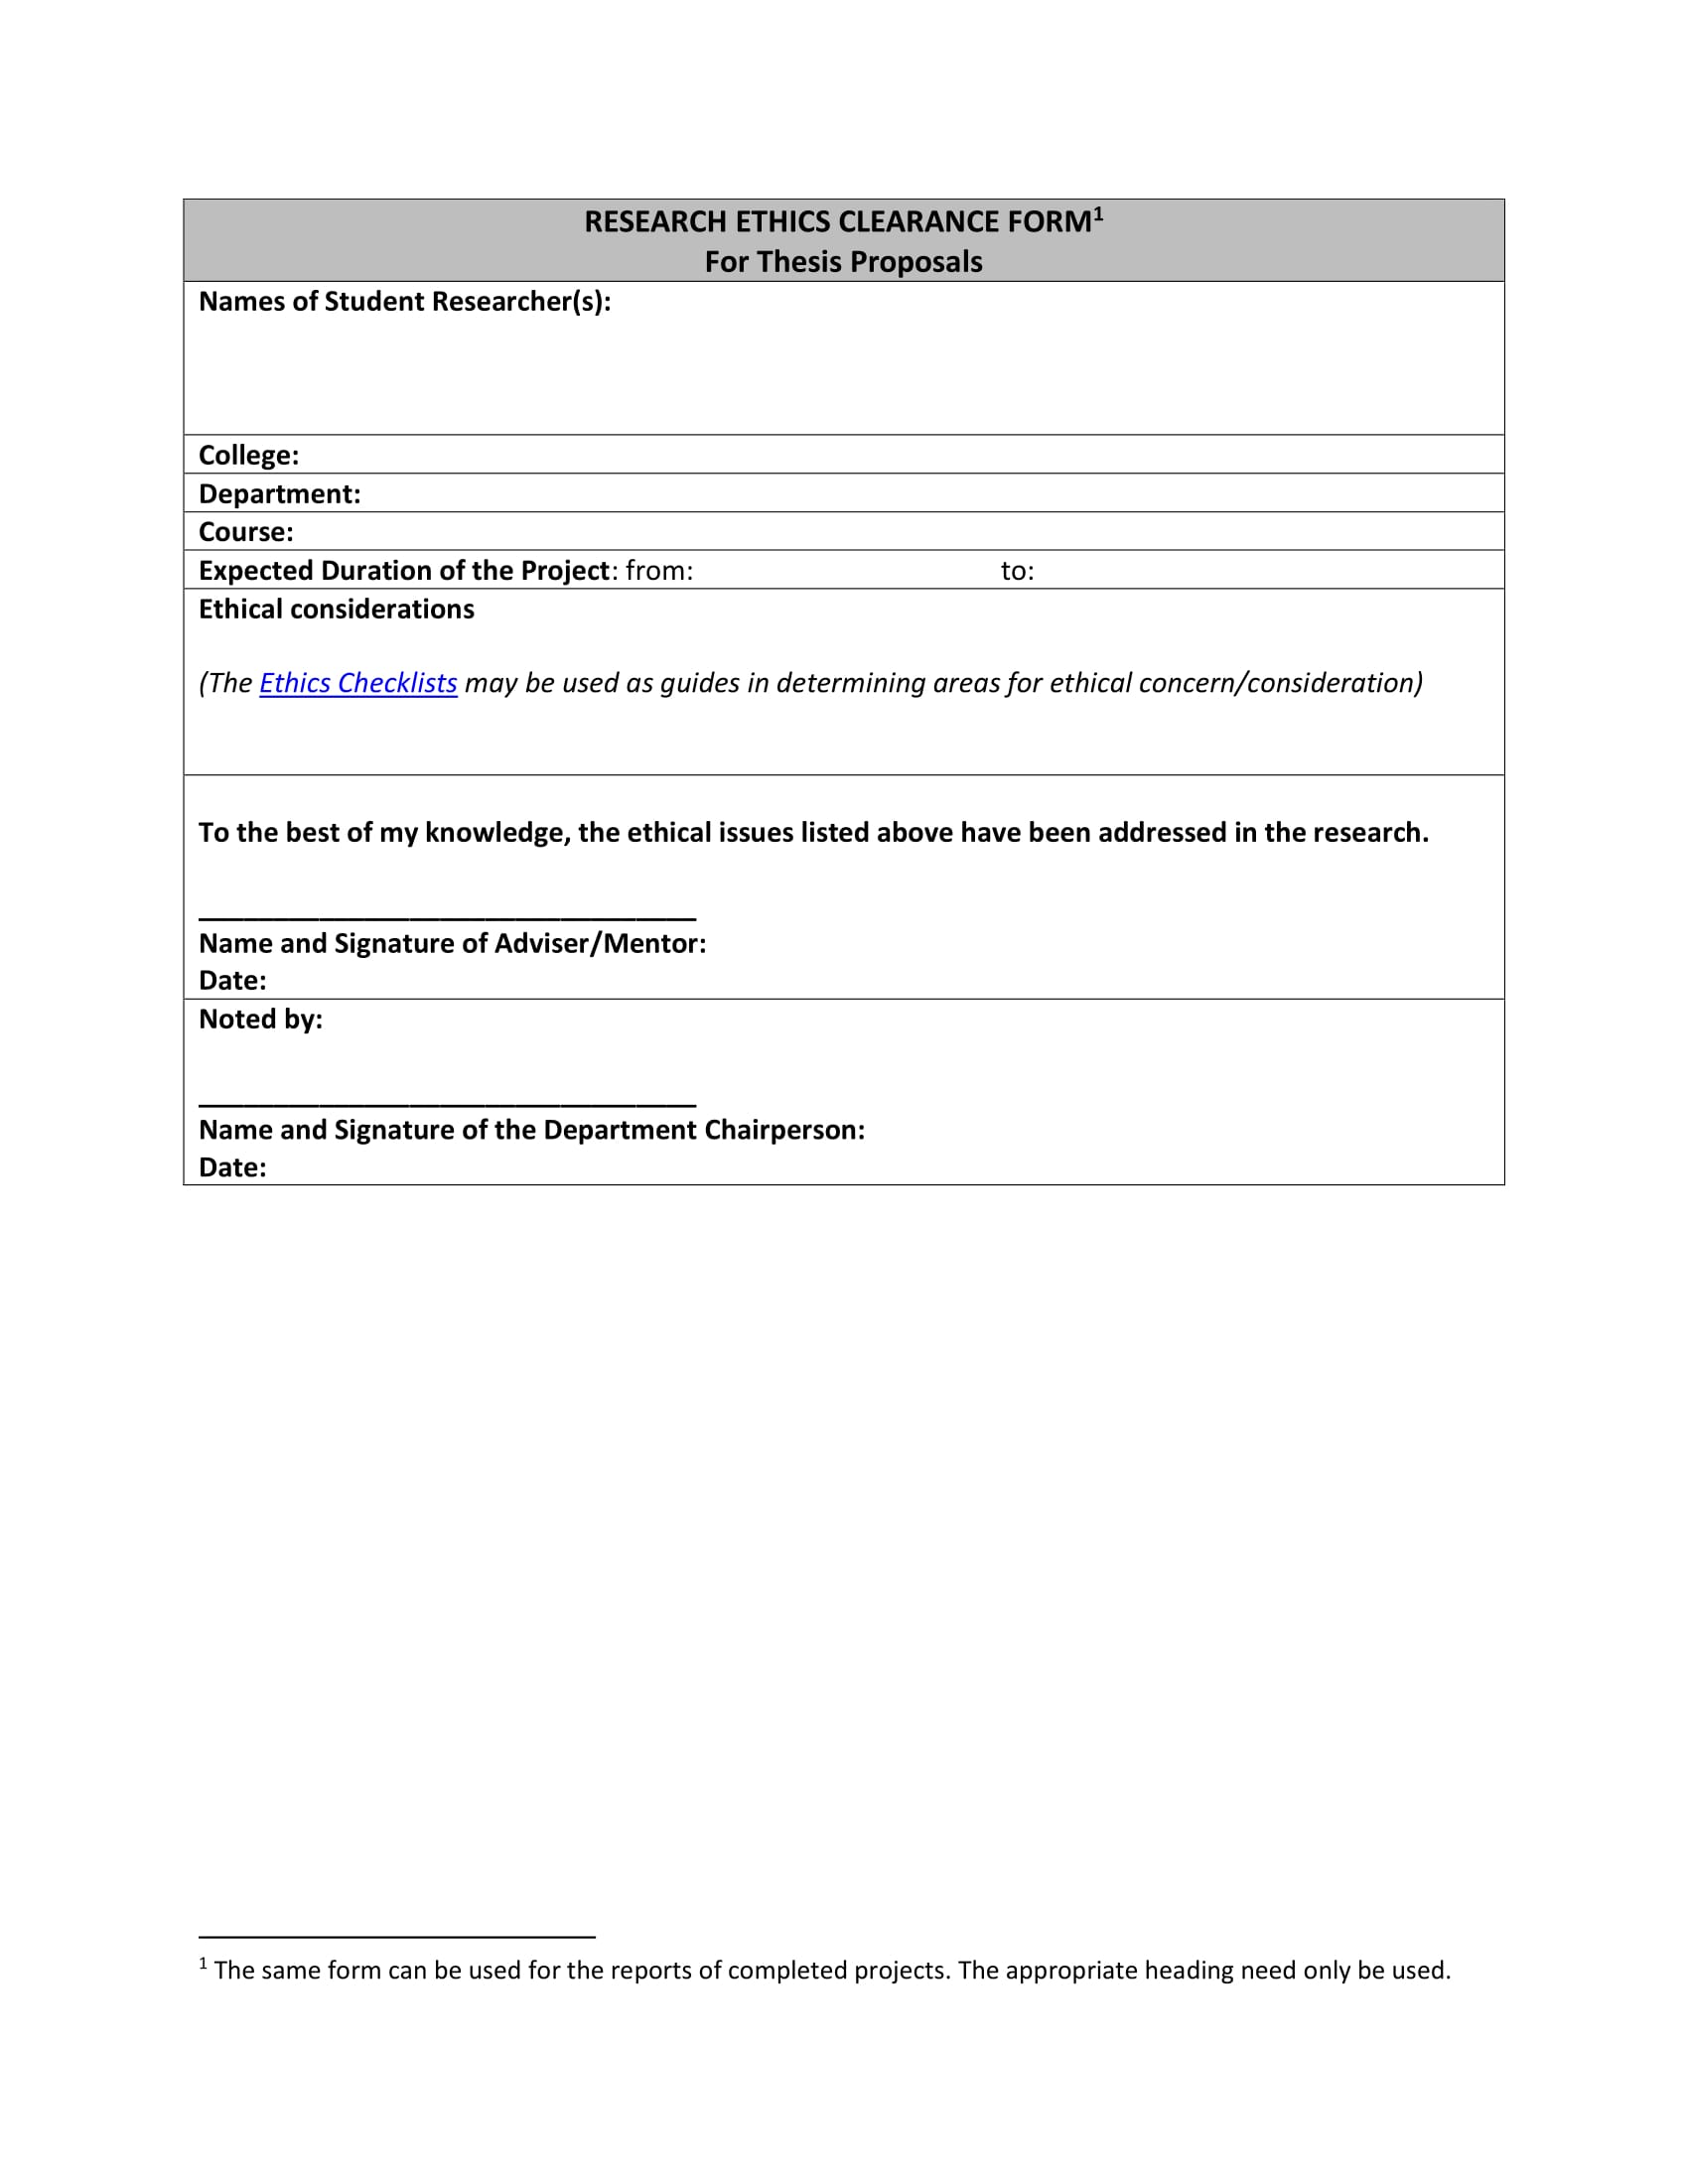 student research clearance form 1